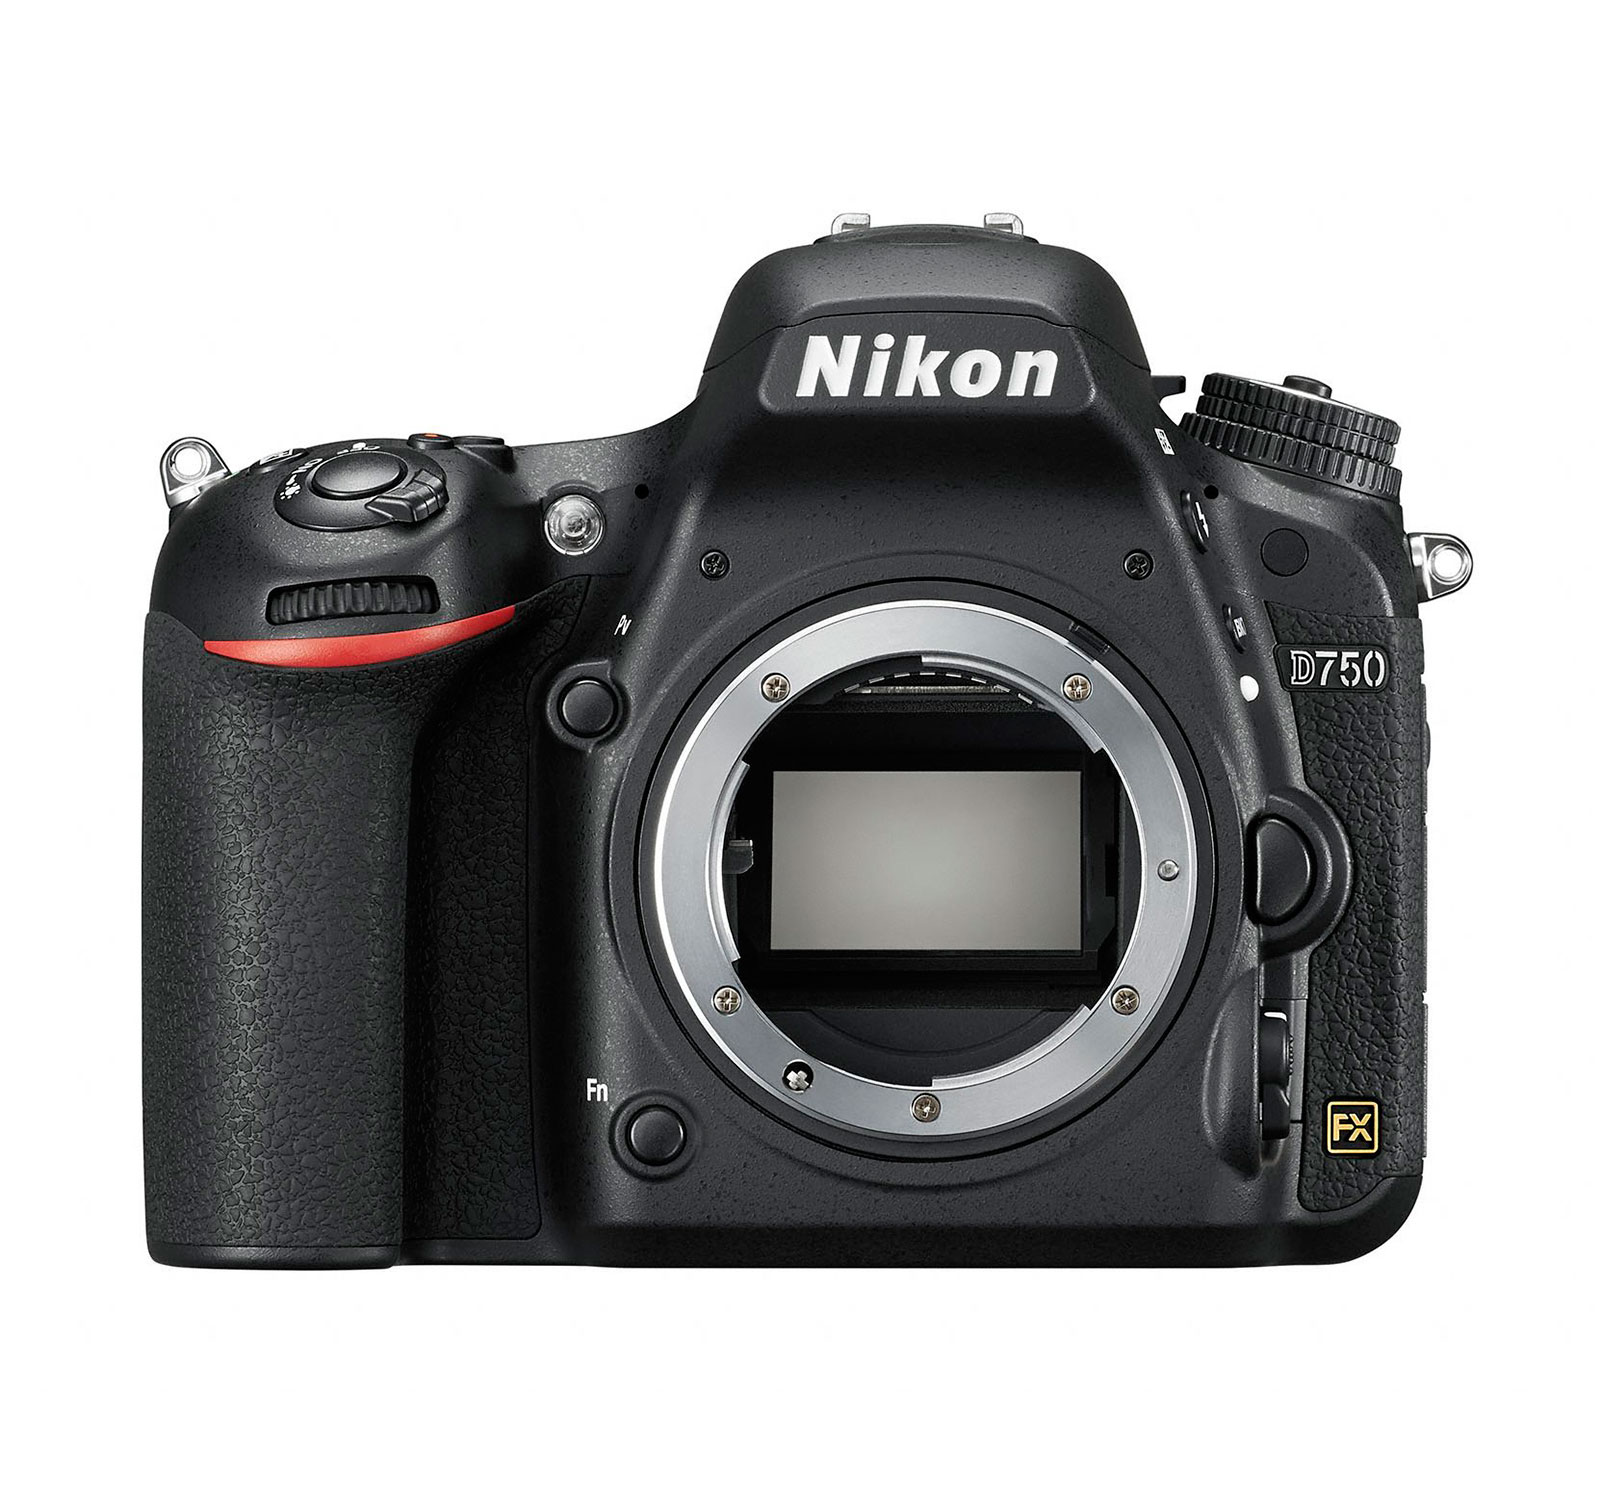 Nikon Black D750 FX-format Digital SLR Camera with 24.3 Megapixels (Body Only) by Nikon